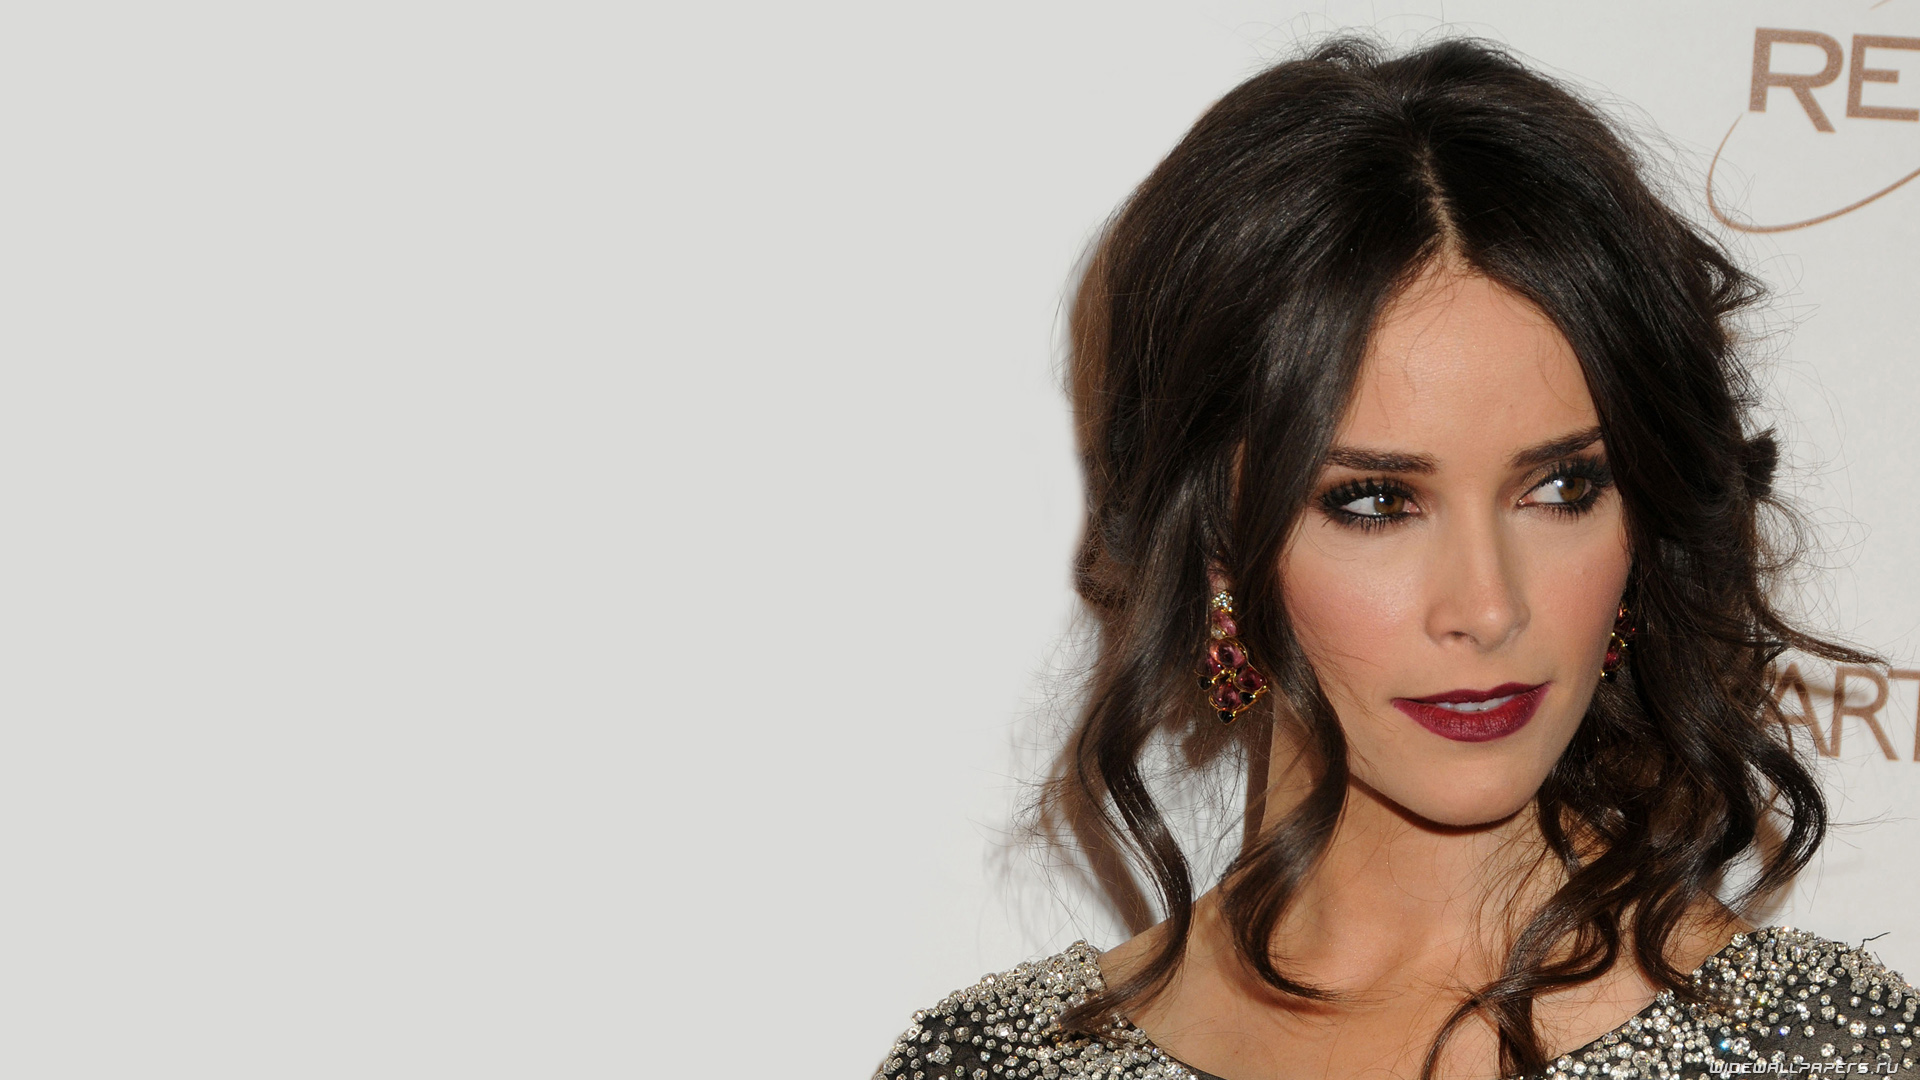 abigail spencer iabigail spencer кинопоиск, abigail spencer site, abigail spencer 2017, abigail spencer style, abigail spencer wallpaper, abigail spencer i, abigail spencer suzanne farrell, abigail spencer фото, abigail spencer википедия, abigail spencer instagram, abigail spencer suits, abigail spencer beach, abigail spencer 2016, abigail spencer and matt lanter, abigail spencer esquire, abigail spencer age, abigail spencer imdb, abigail spencer wikipedia, abigail spencer oscar, abigail spencer hairstyles